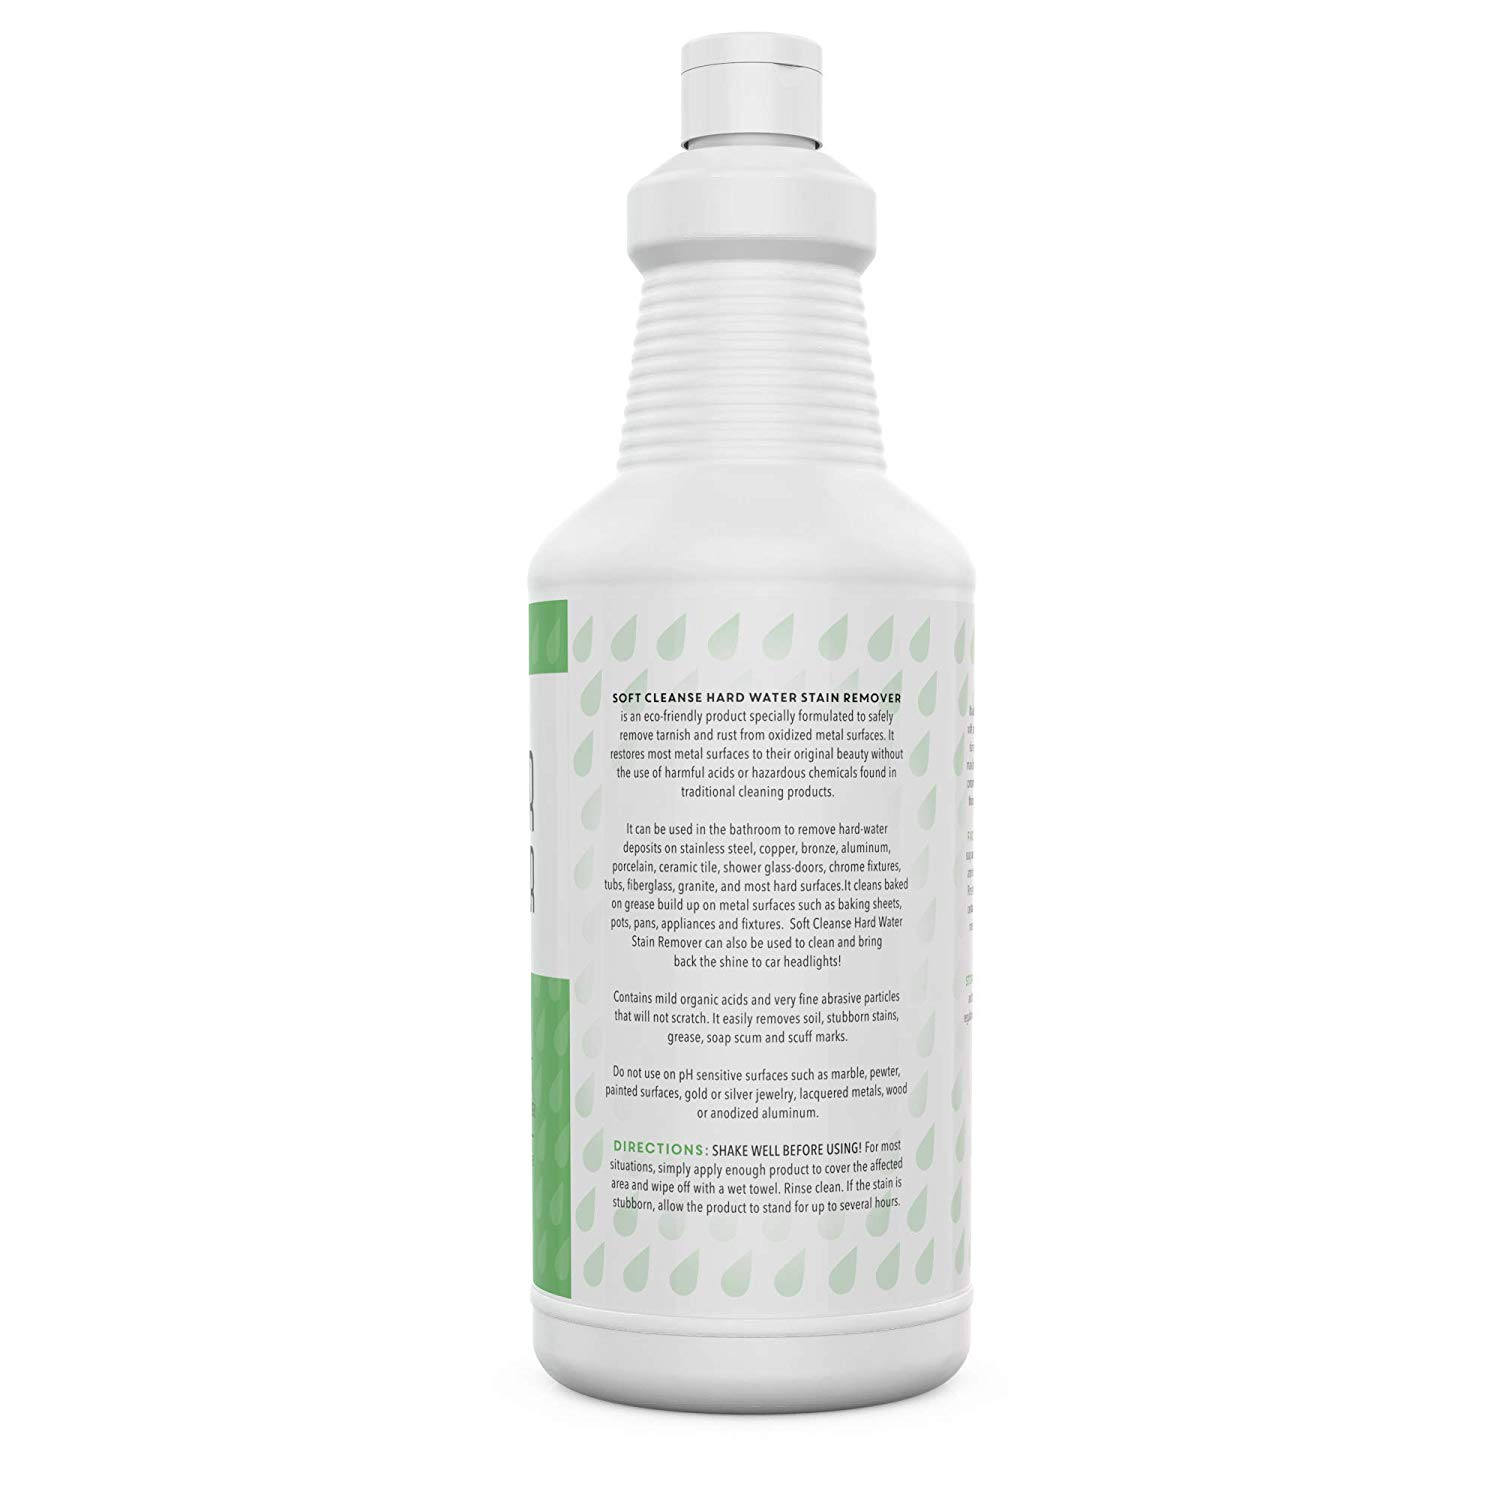 Hard Water Stain Remover (32oz) - Eco Friendly Versatile Cleaning Product